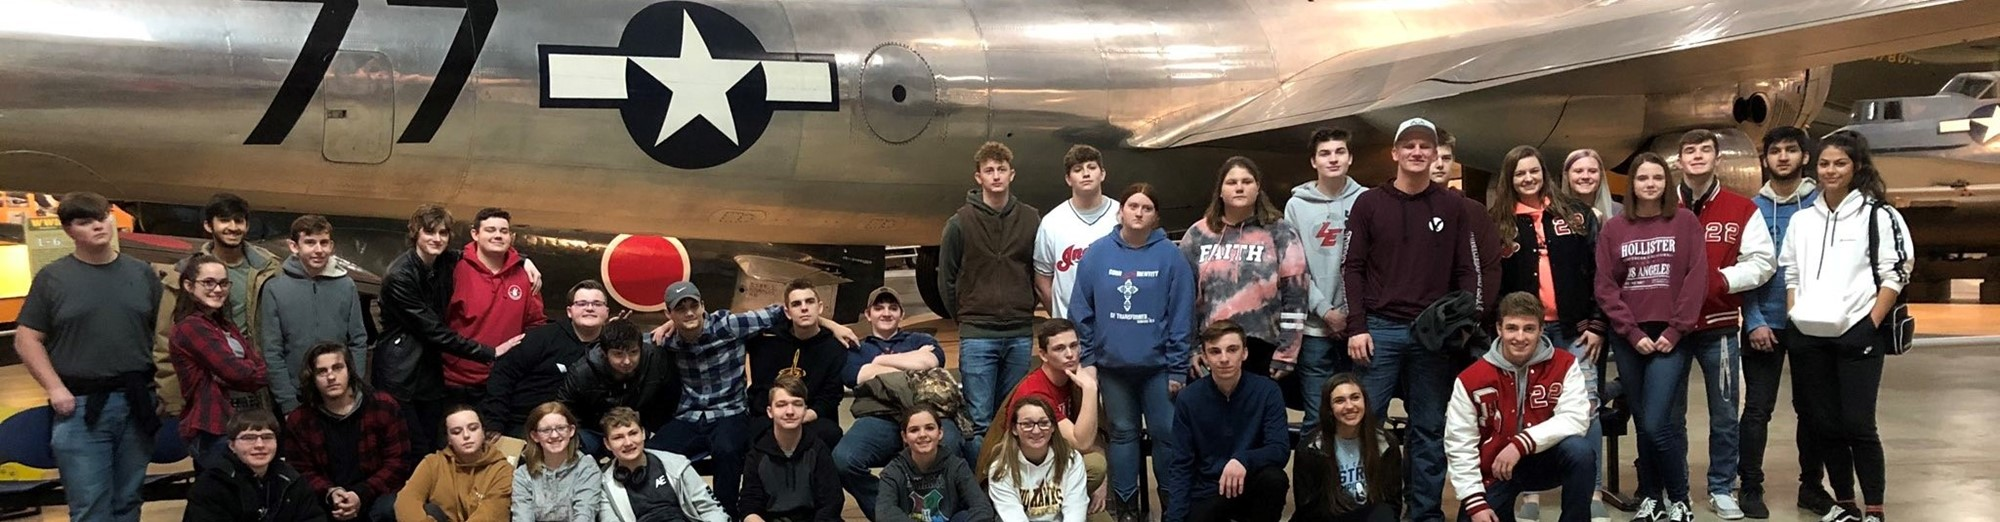 Air Force Museum Trip